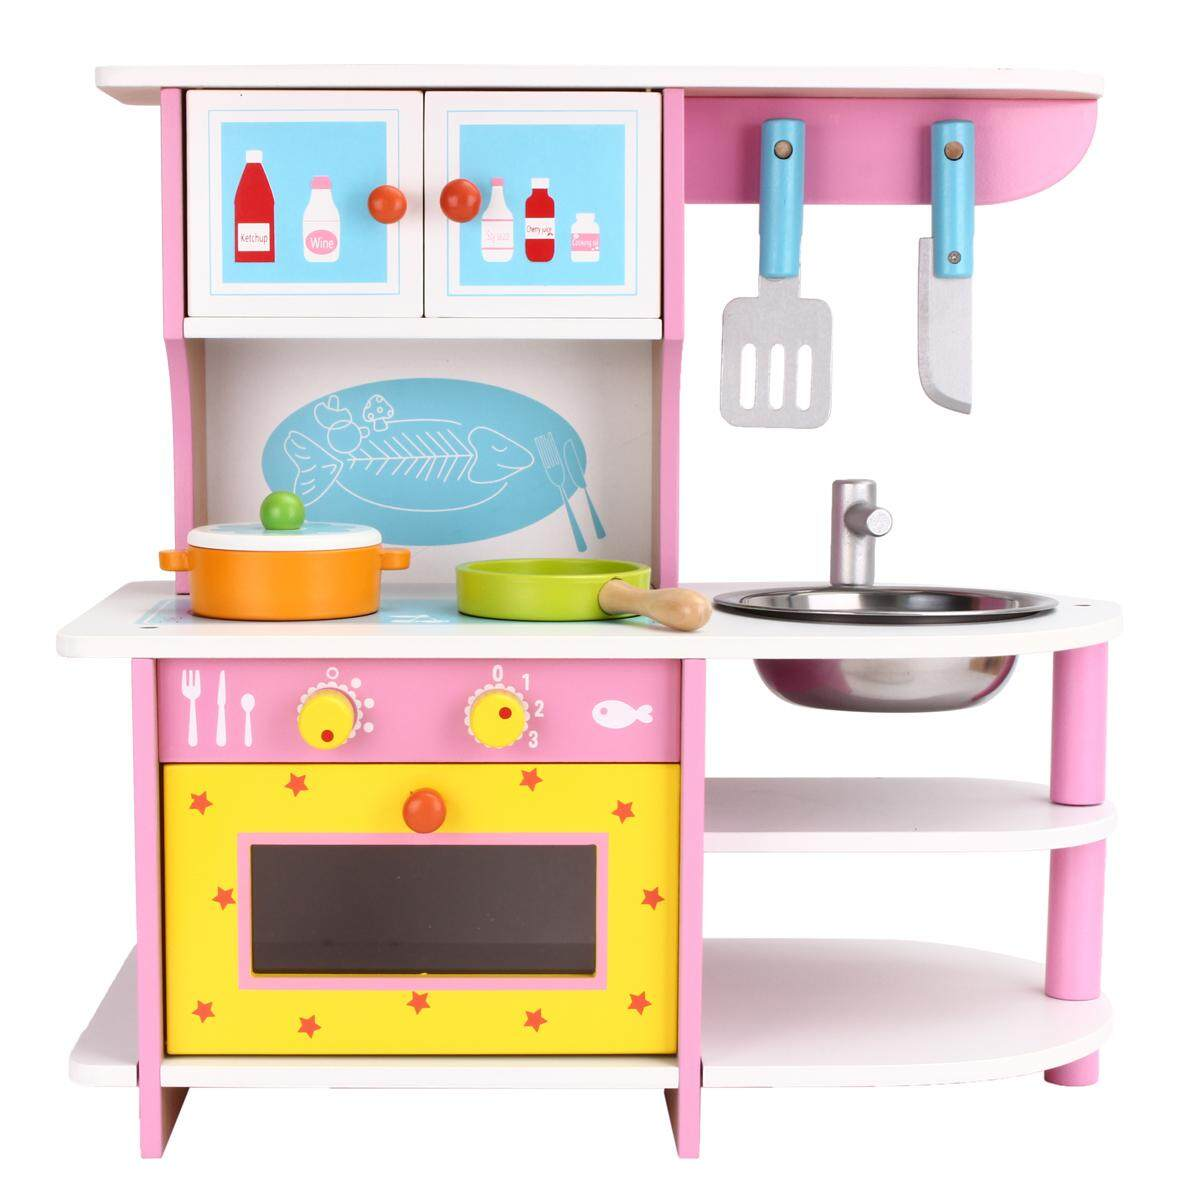 Large Girls Kids Pink Wooden Play Kitchen Role Play Pretend Set Toy Children By Ferry.